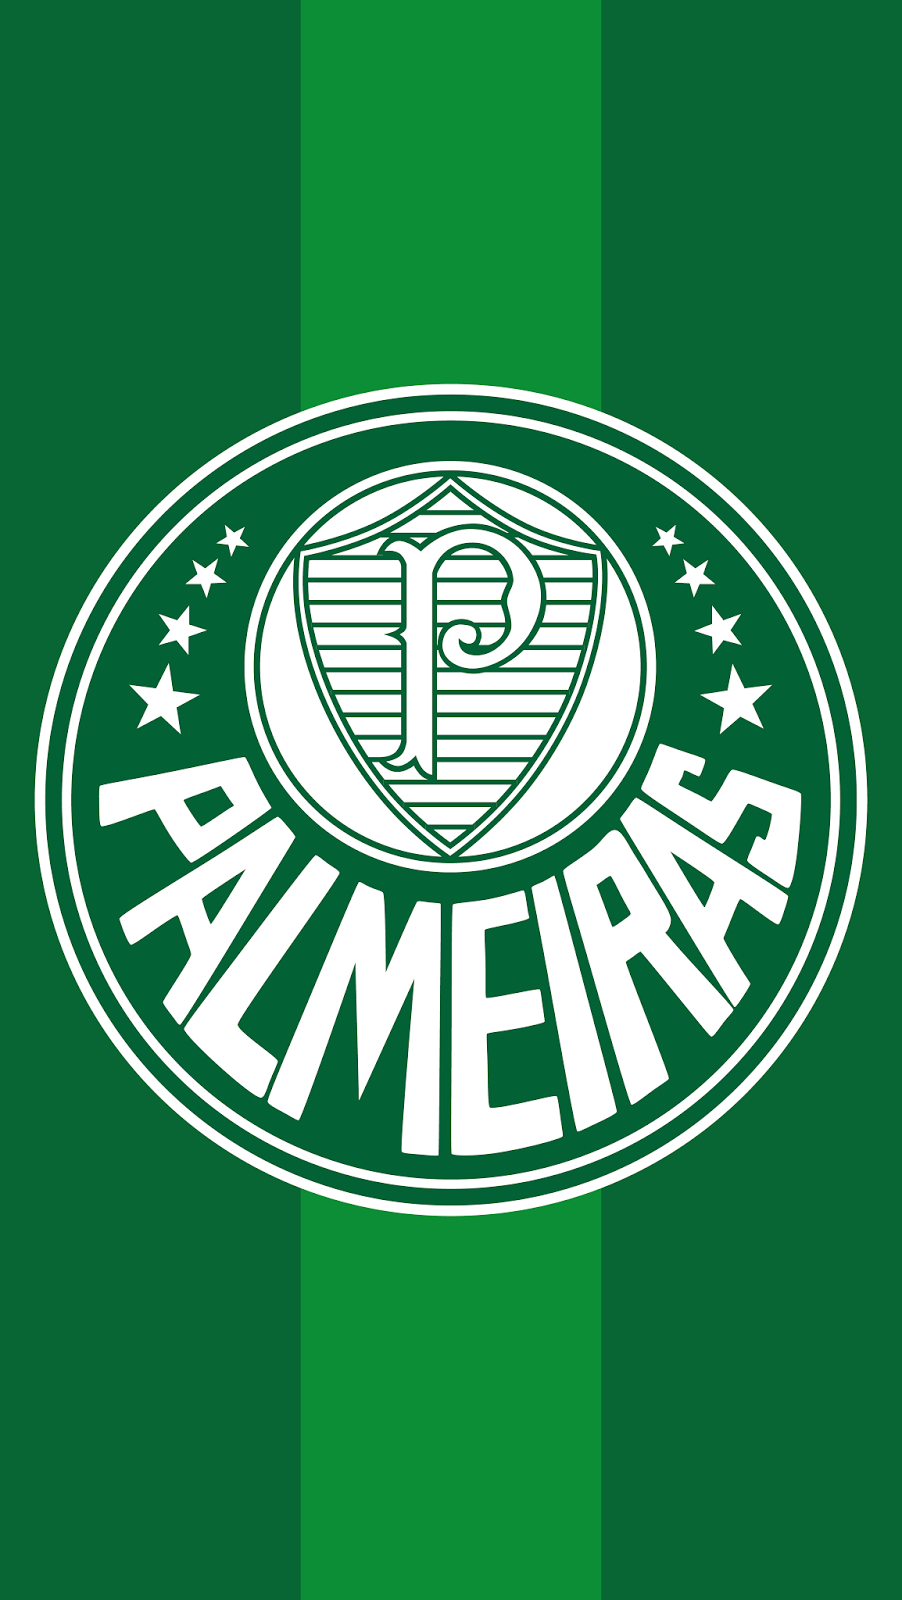 Wallpaper palmeiras para celular gratis for Wallpaper para celular